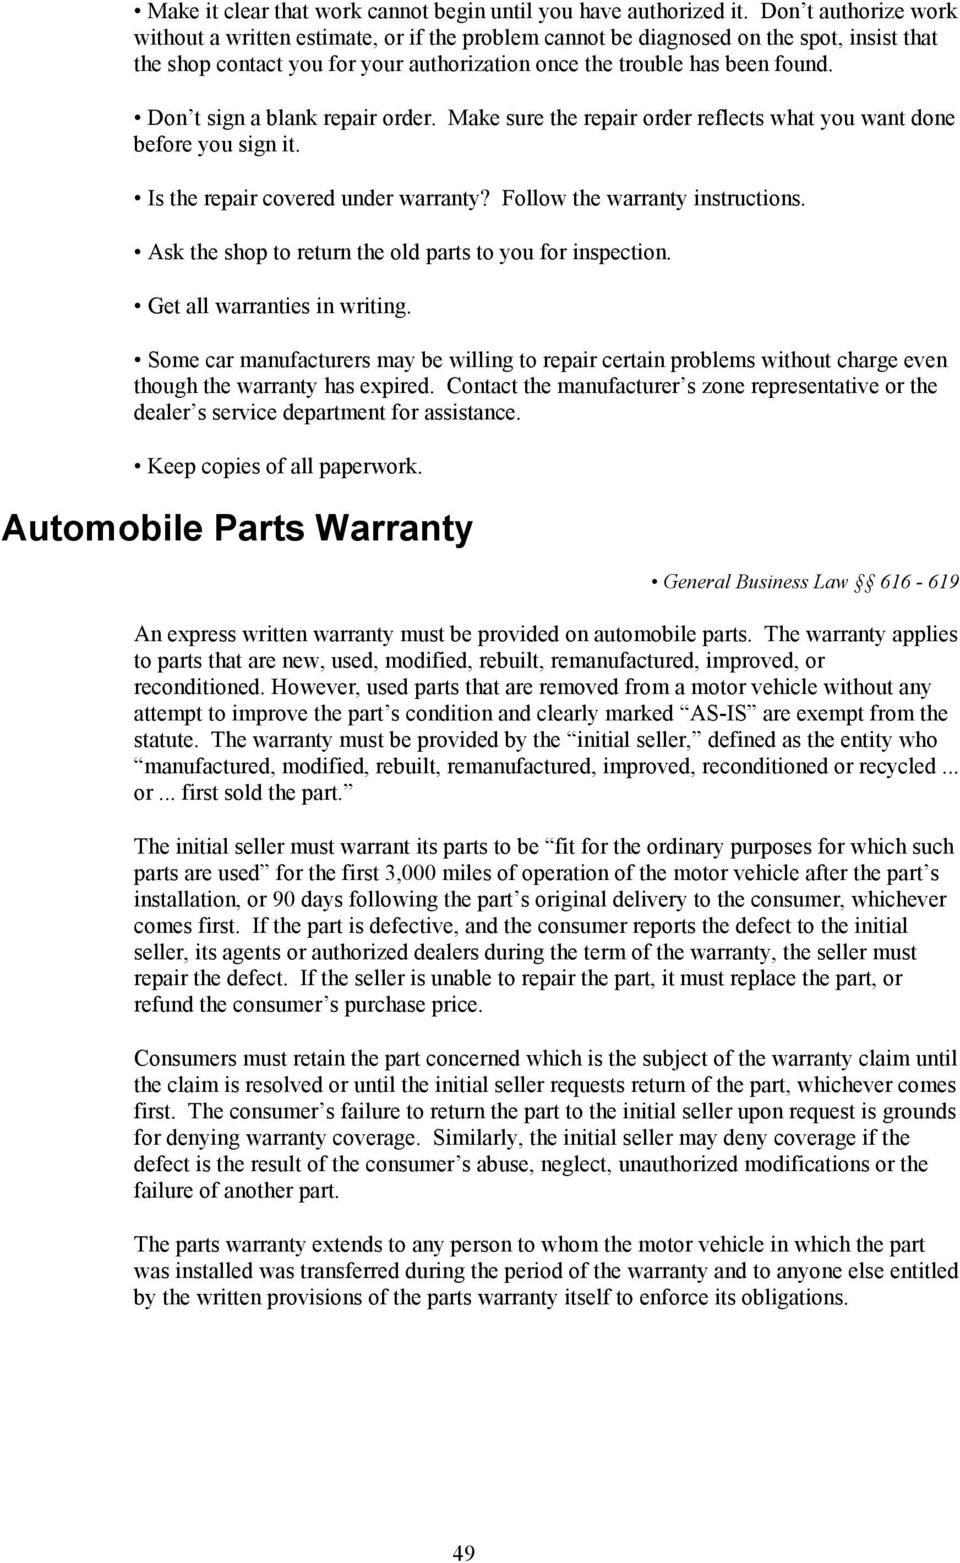 Don t sign a blank repair order. Make sure the repair order reflects what you want done before you sign it. Is the repair covered under warranty? Follow the warranty instructions.